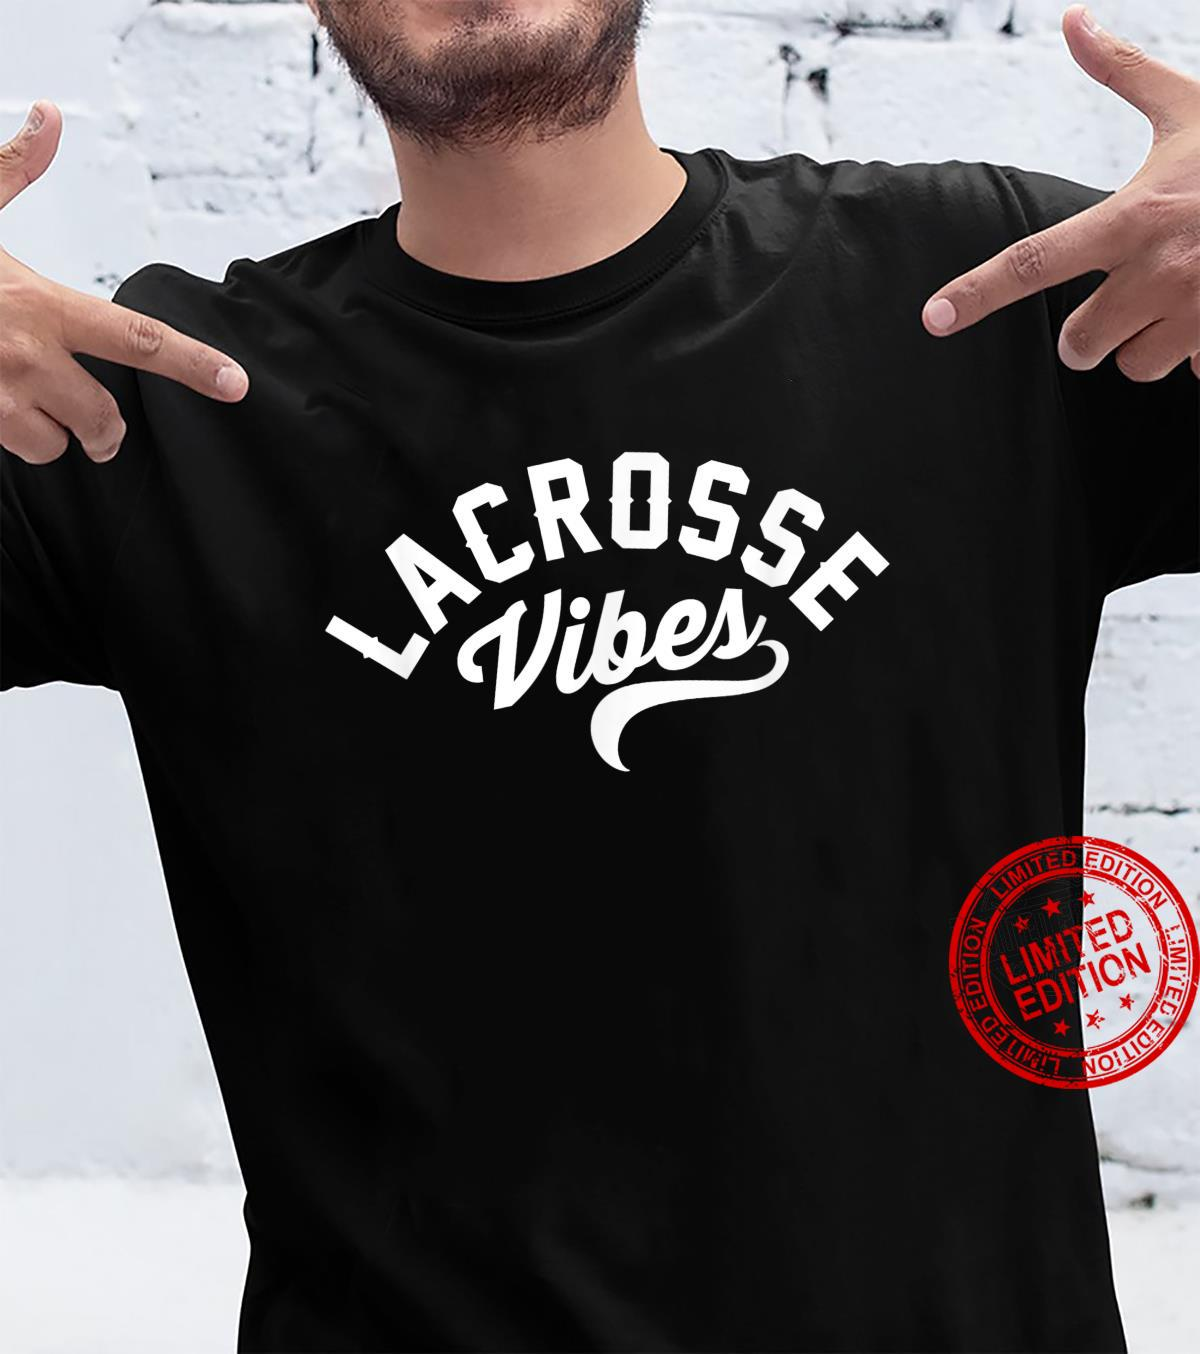 Lacrosse Vibes Ready for Gameday Lax Shirt